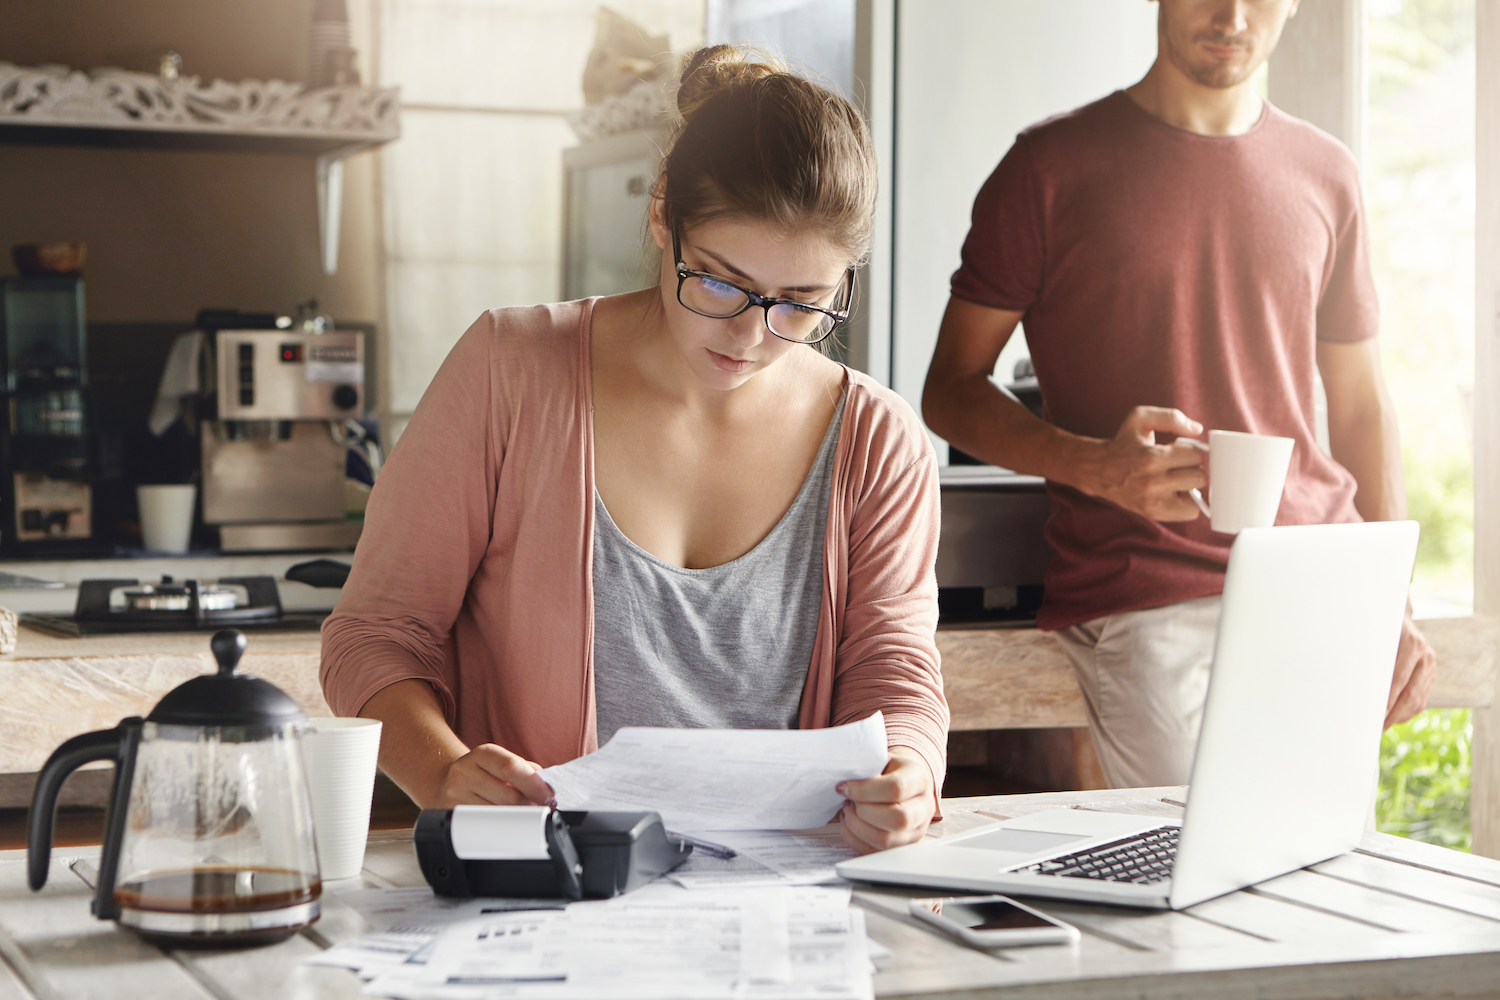 Should a Husband and Wife Have Separate Bank Accounts